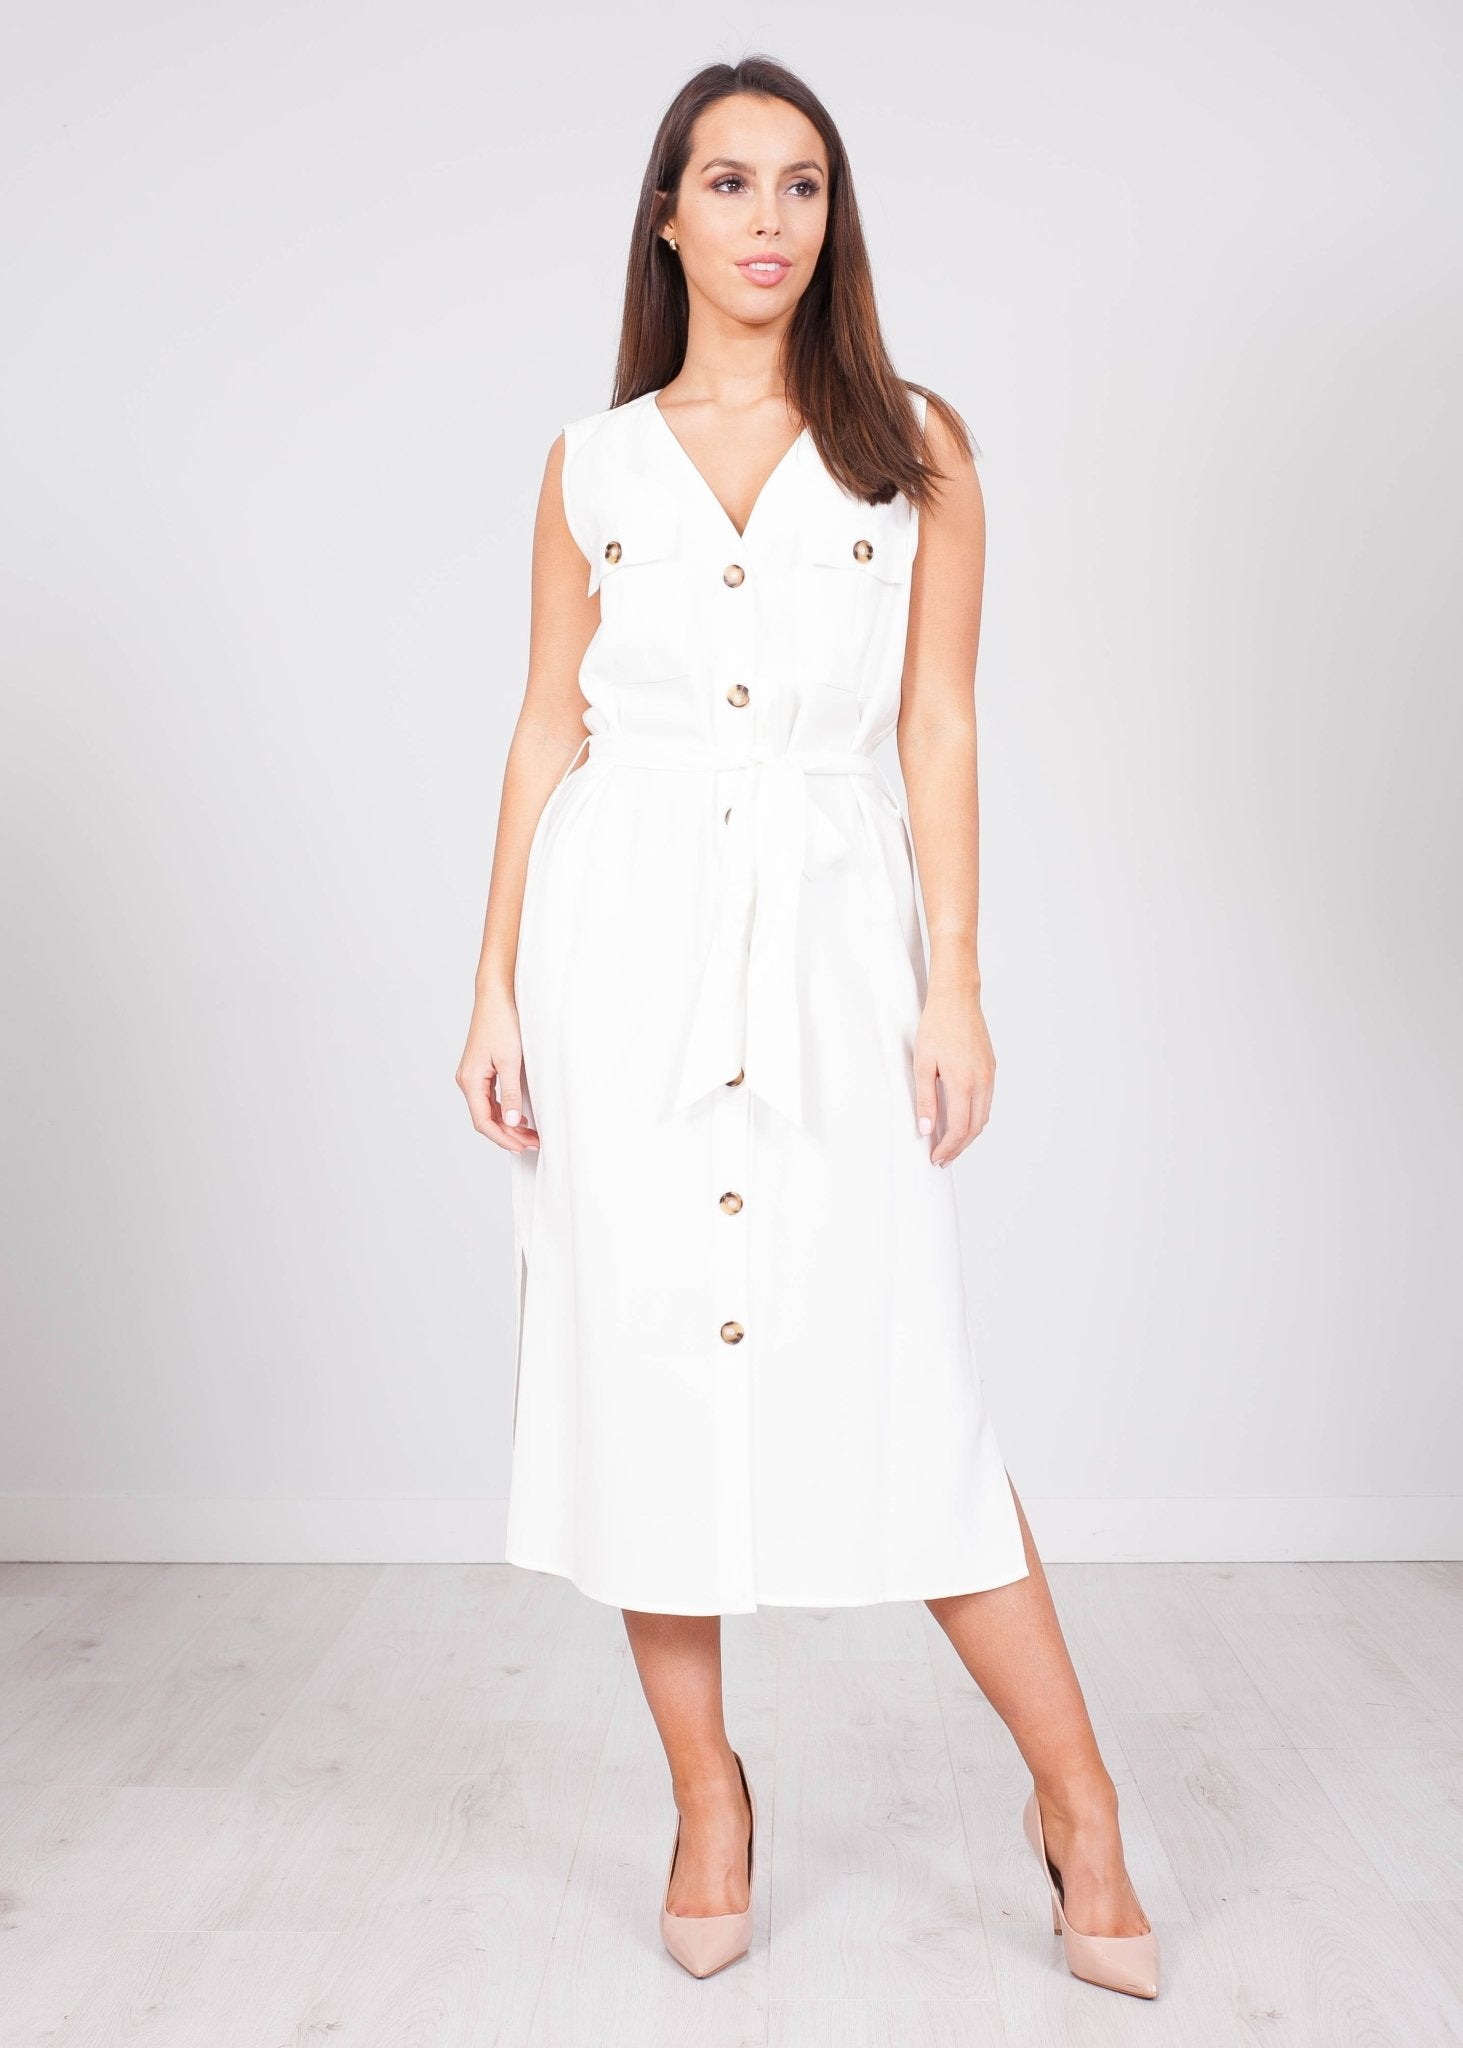 Faye White Tie Waist Dress - The Walk in Wardrobe